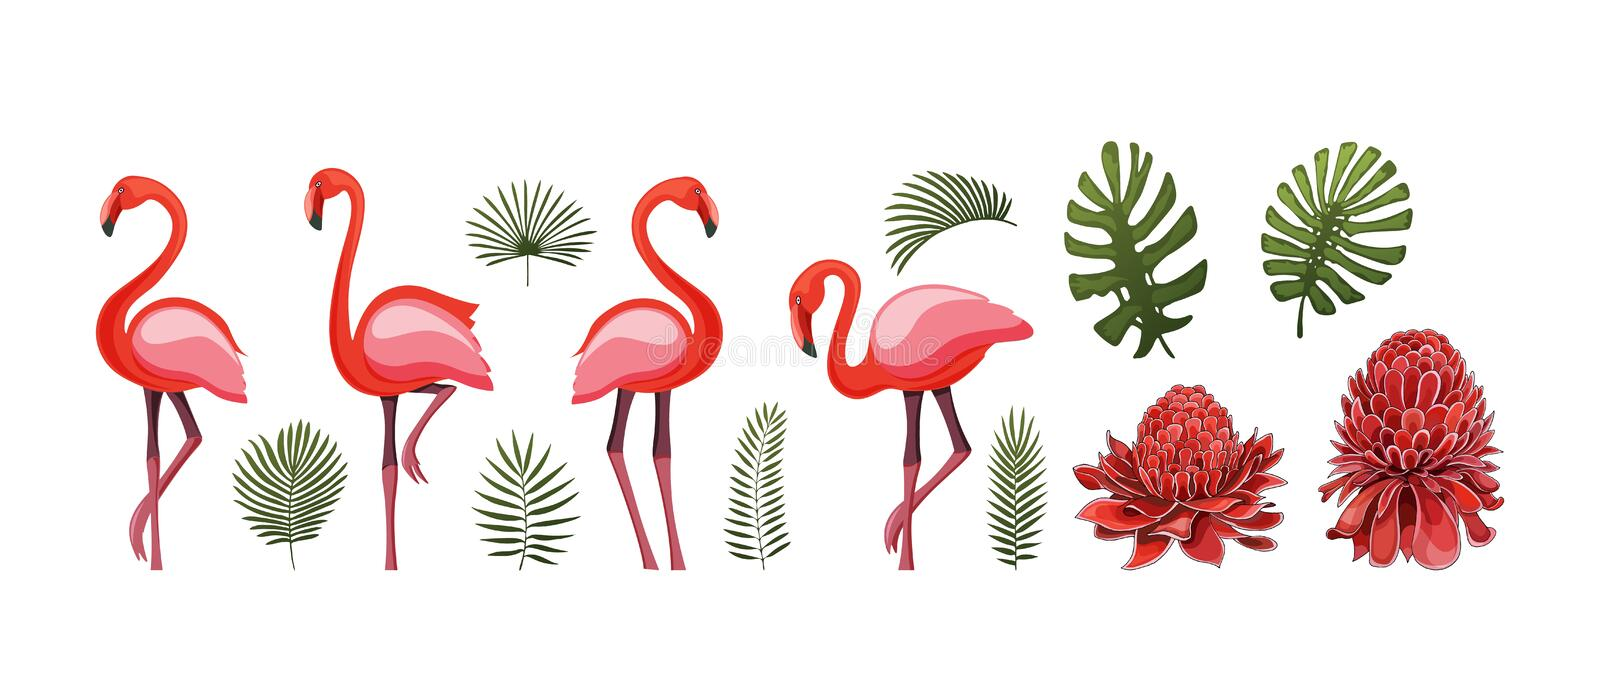 Summer tropical graphic elements with flamingo bird. Isolated stock vectors. royalty free illustration